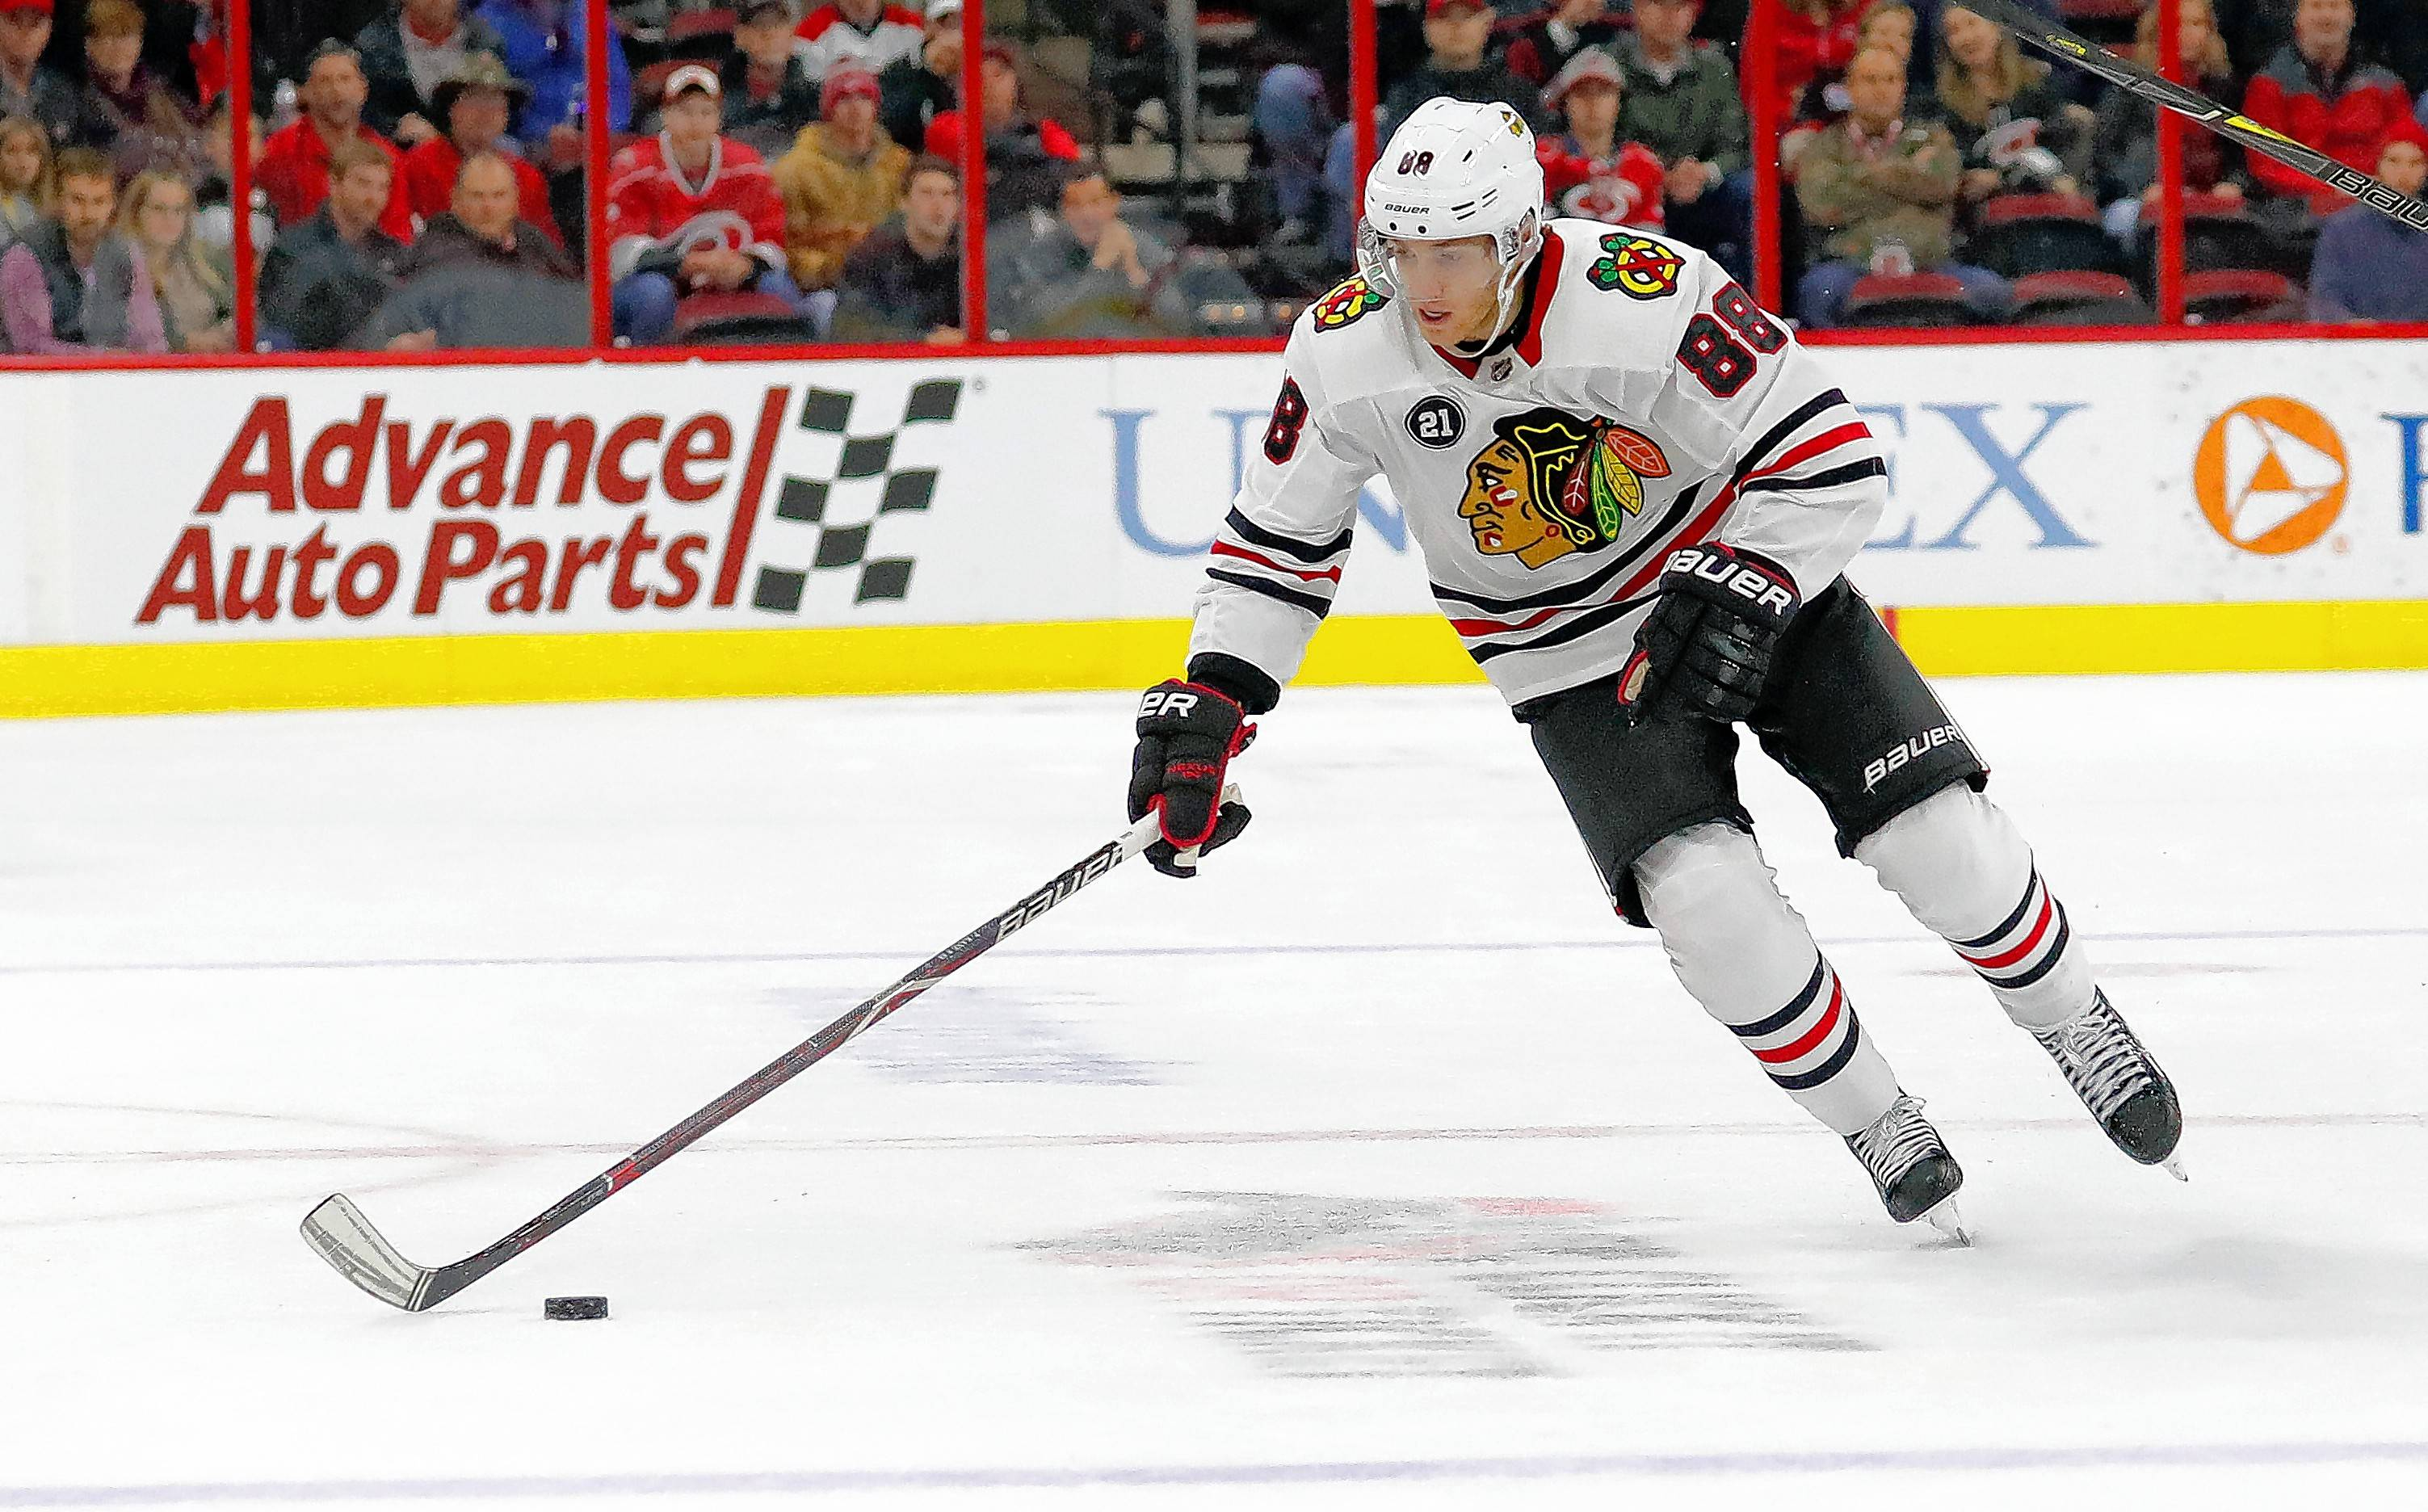 If Patrick Kane registers an assist in the next two games, he will tie Adam Oates for the second-longest assist streak in league history at 18. Wayne Gretzky holds the record at 23.